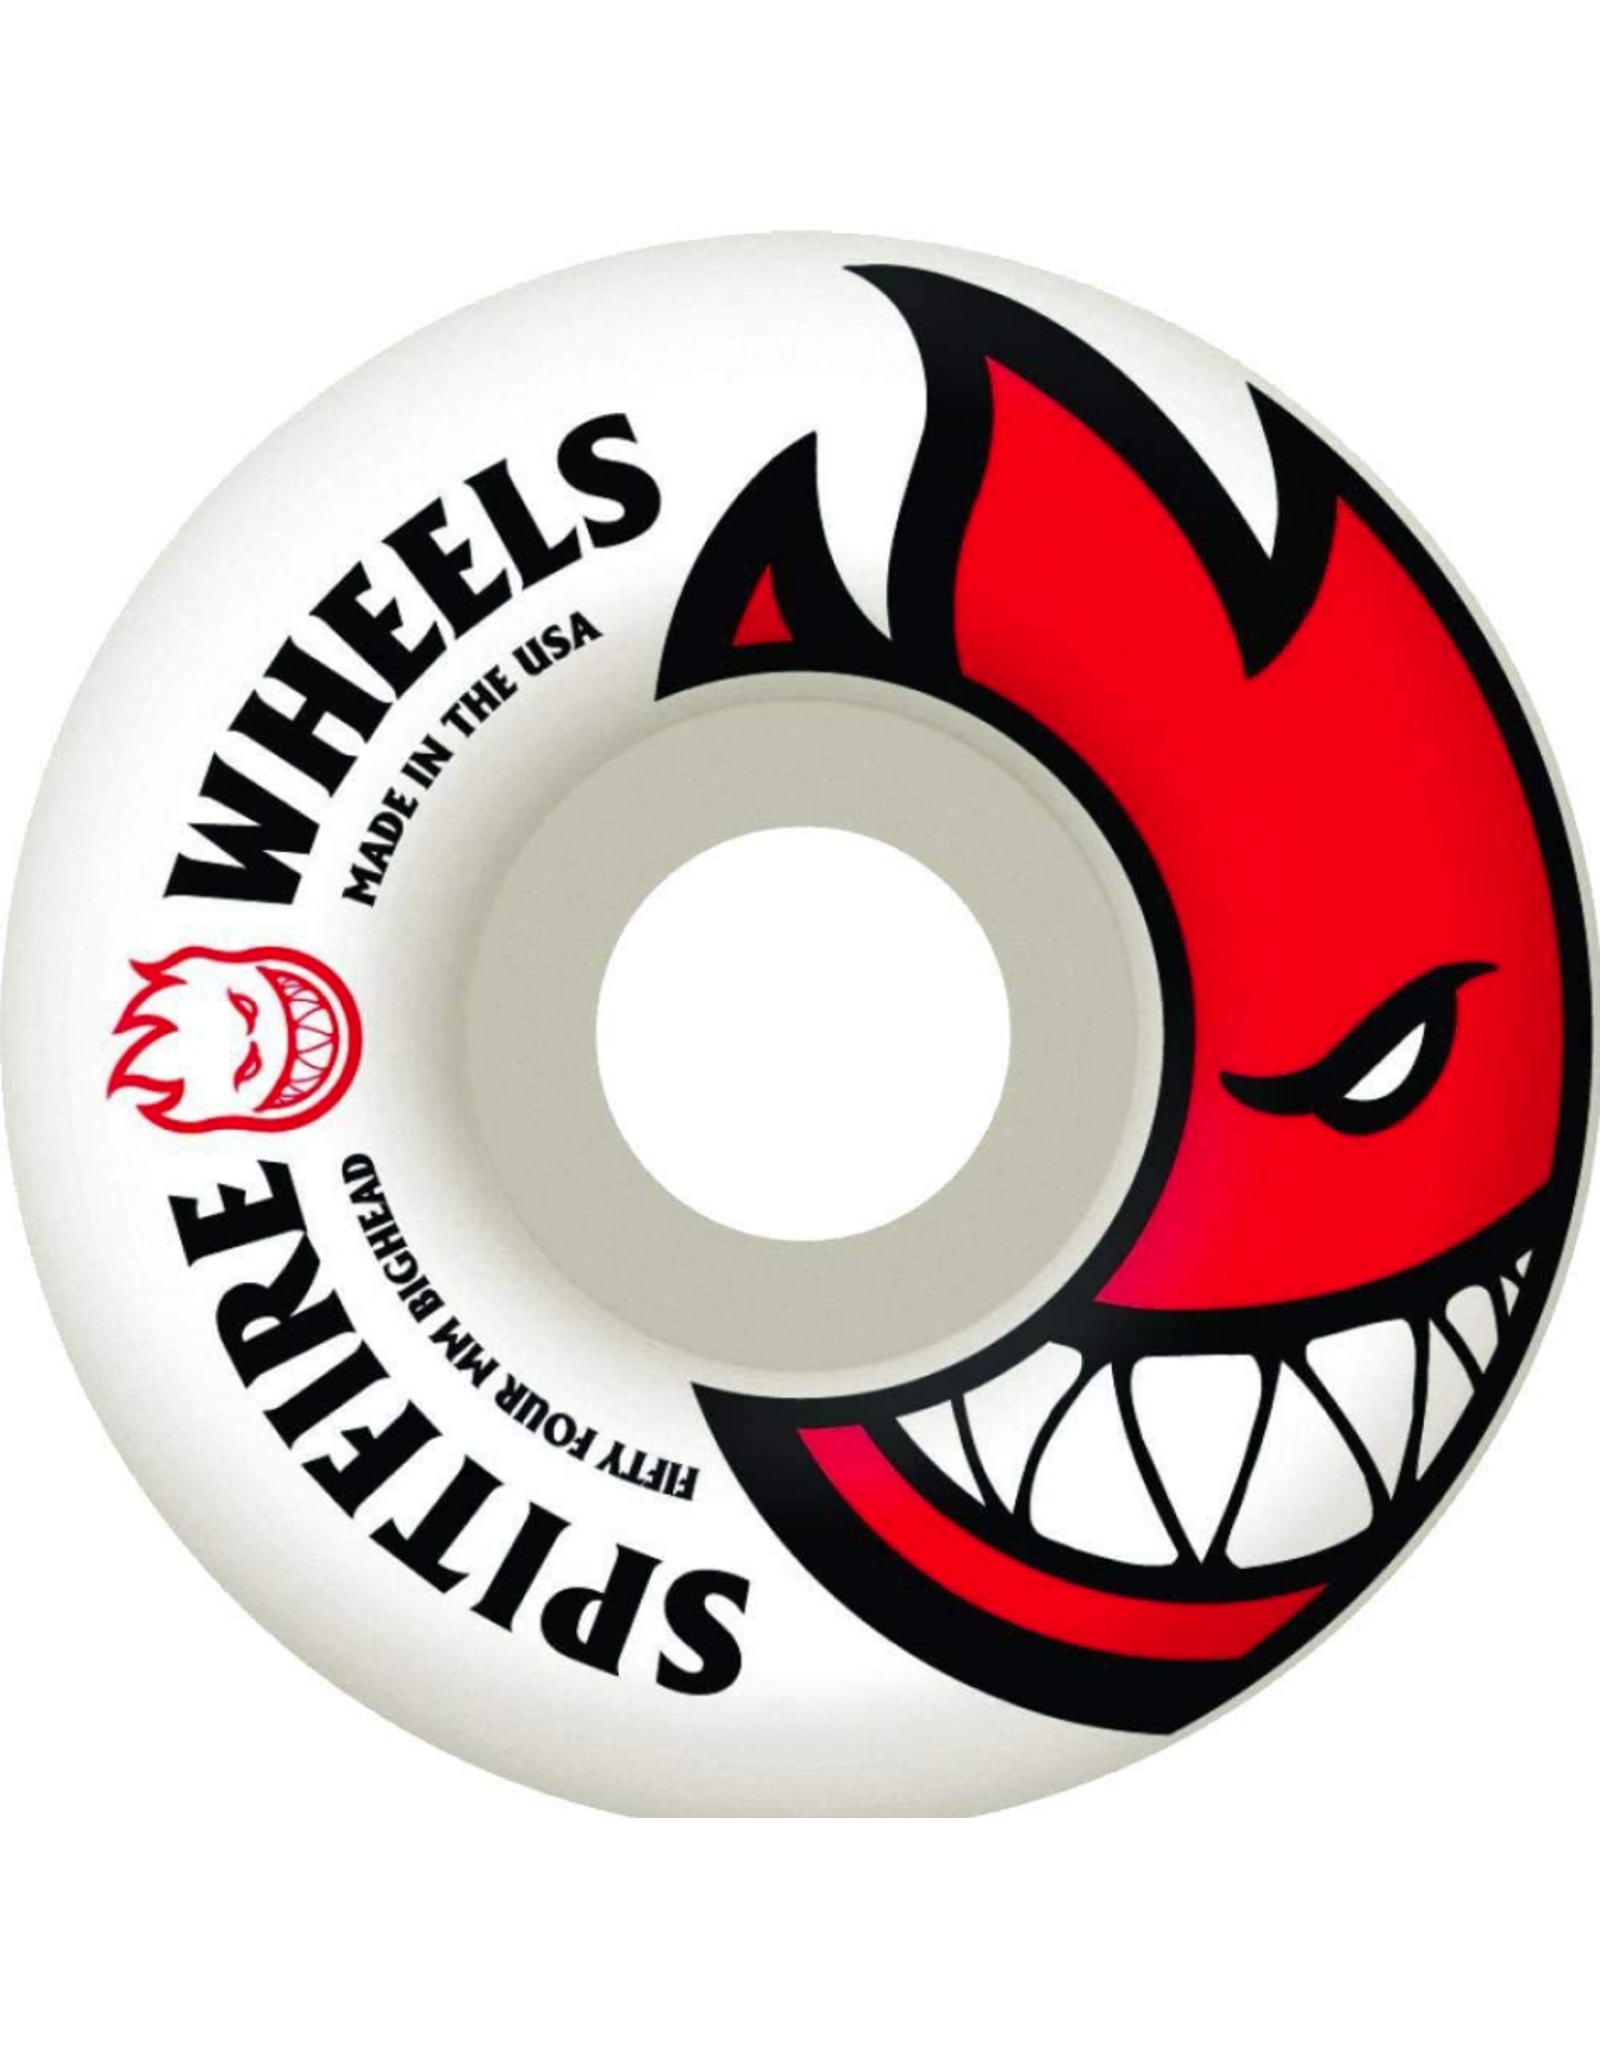 Spitfire Bighead Wheels 99d - Various Sizes